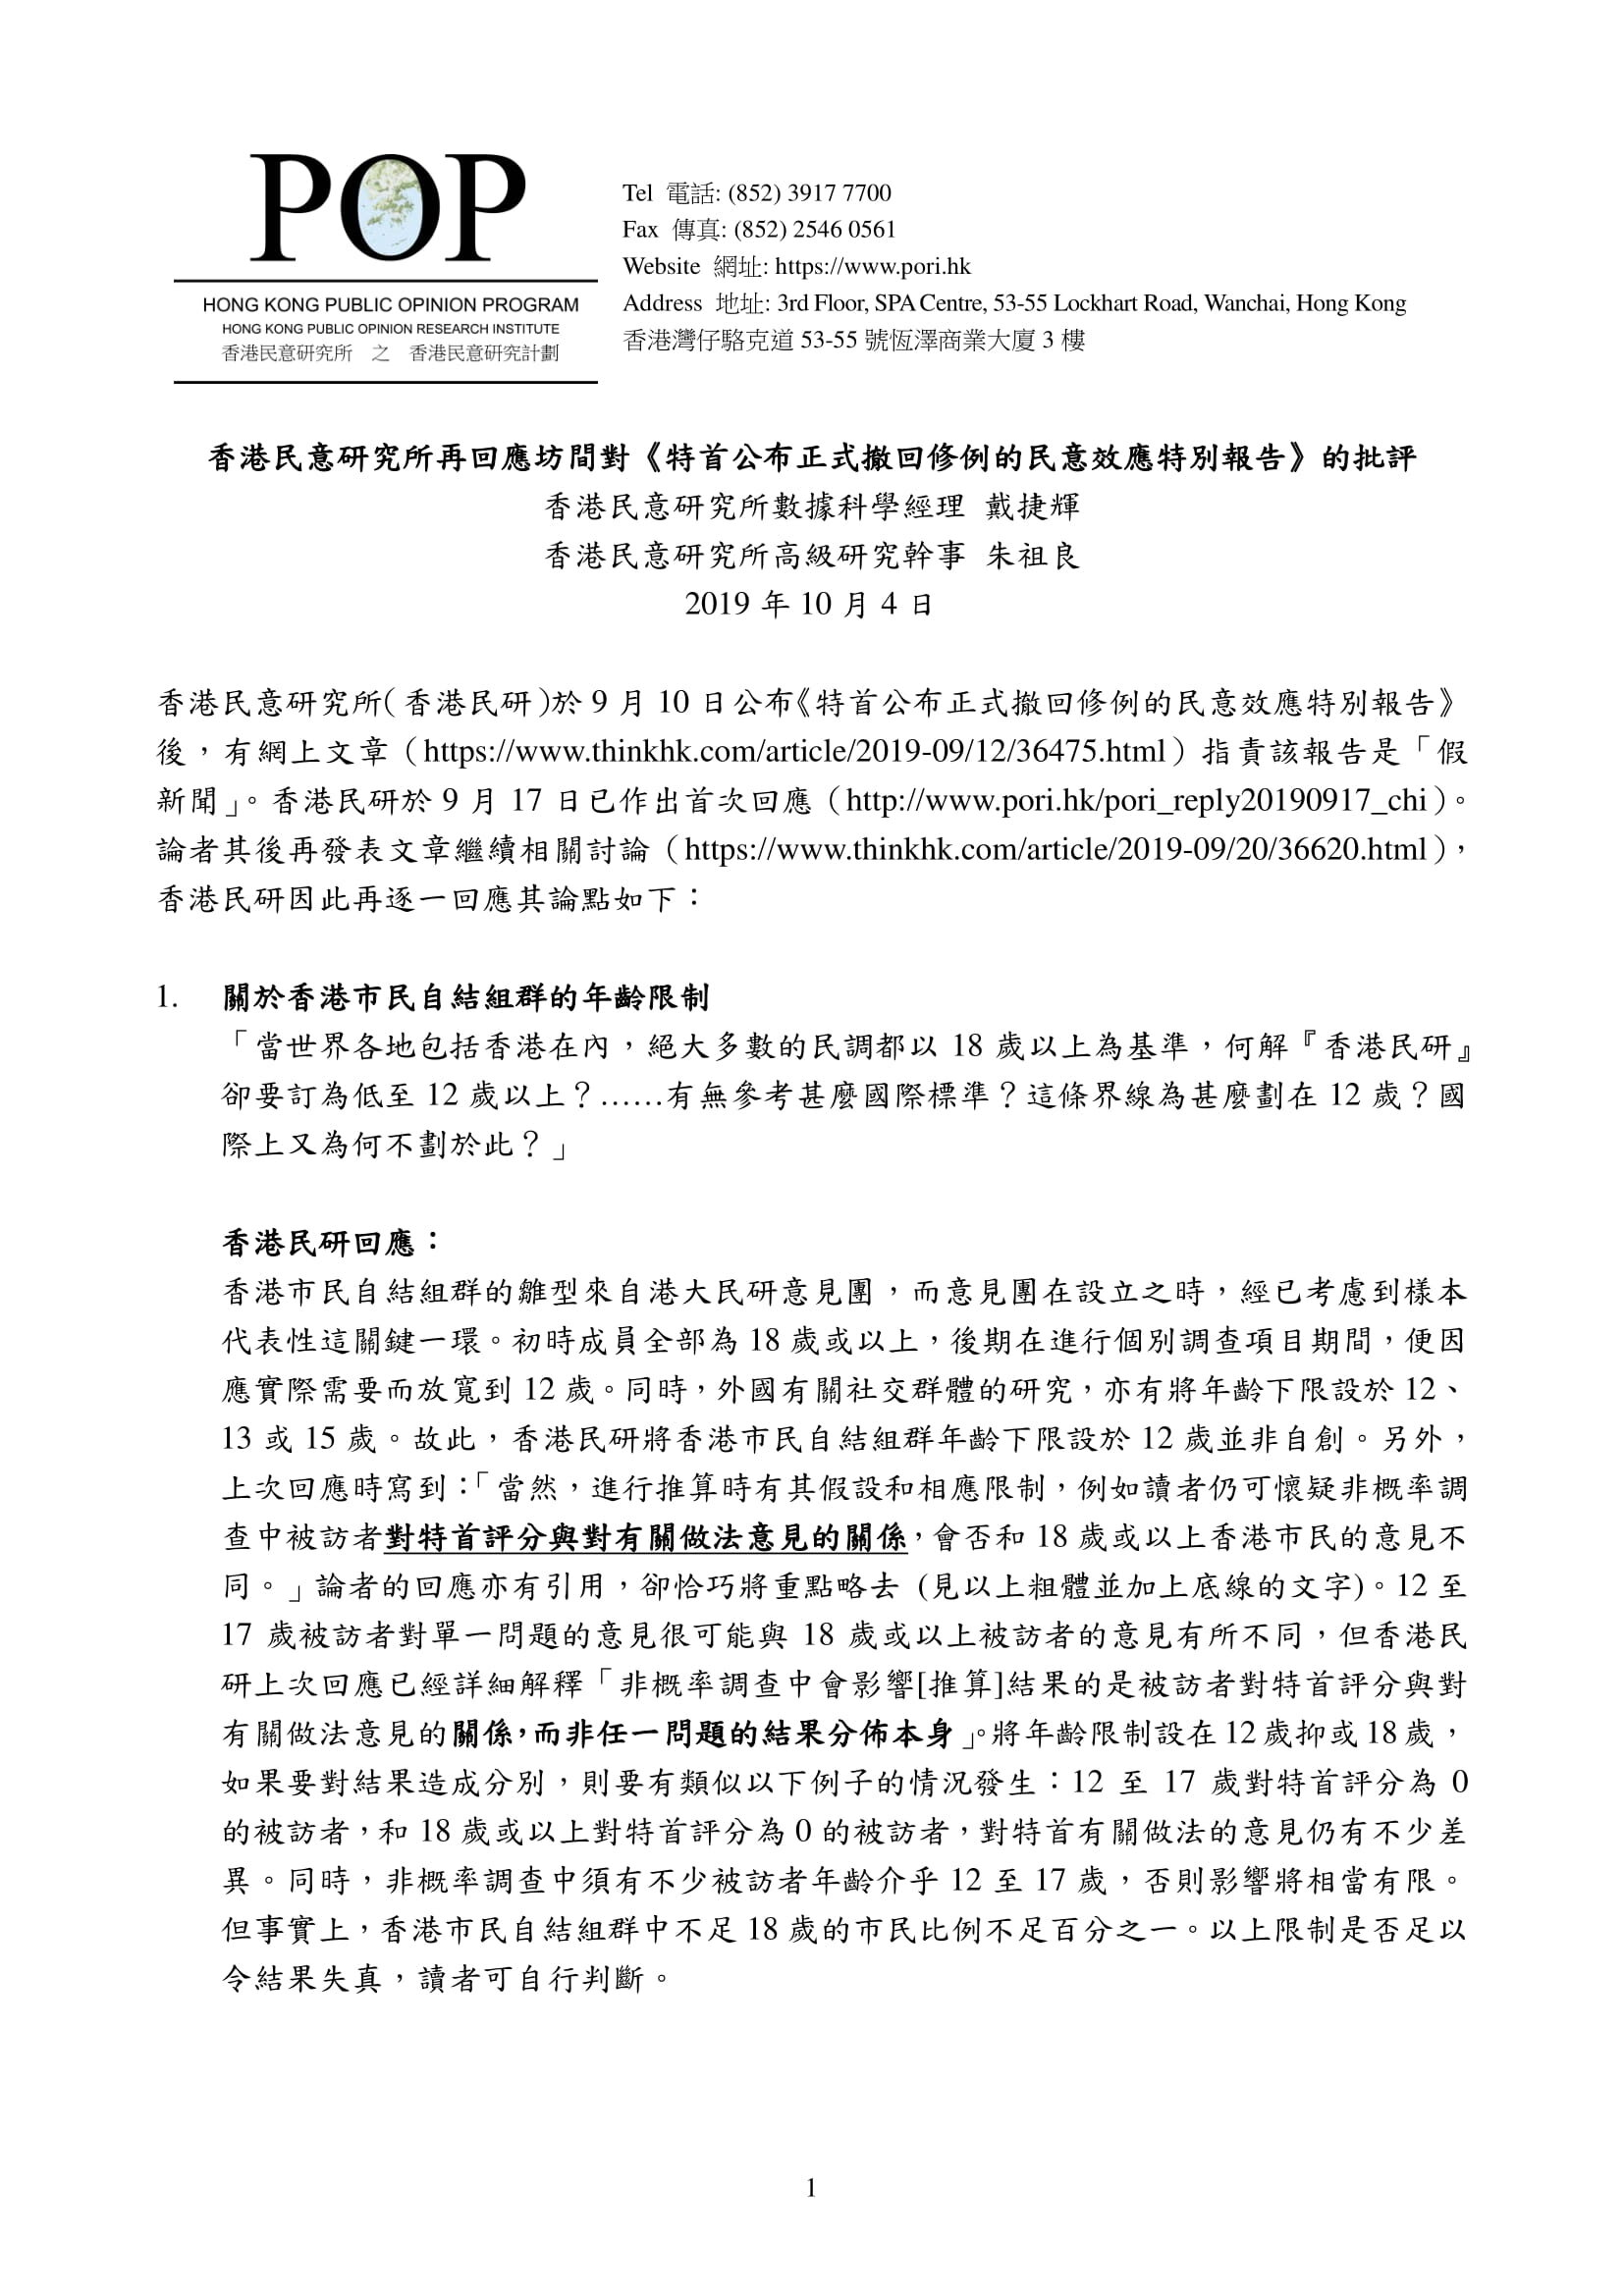 sp_rpt_2019sep10_CE_reply2nd_v1_clean-page-001.jpg